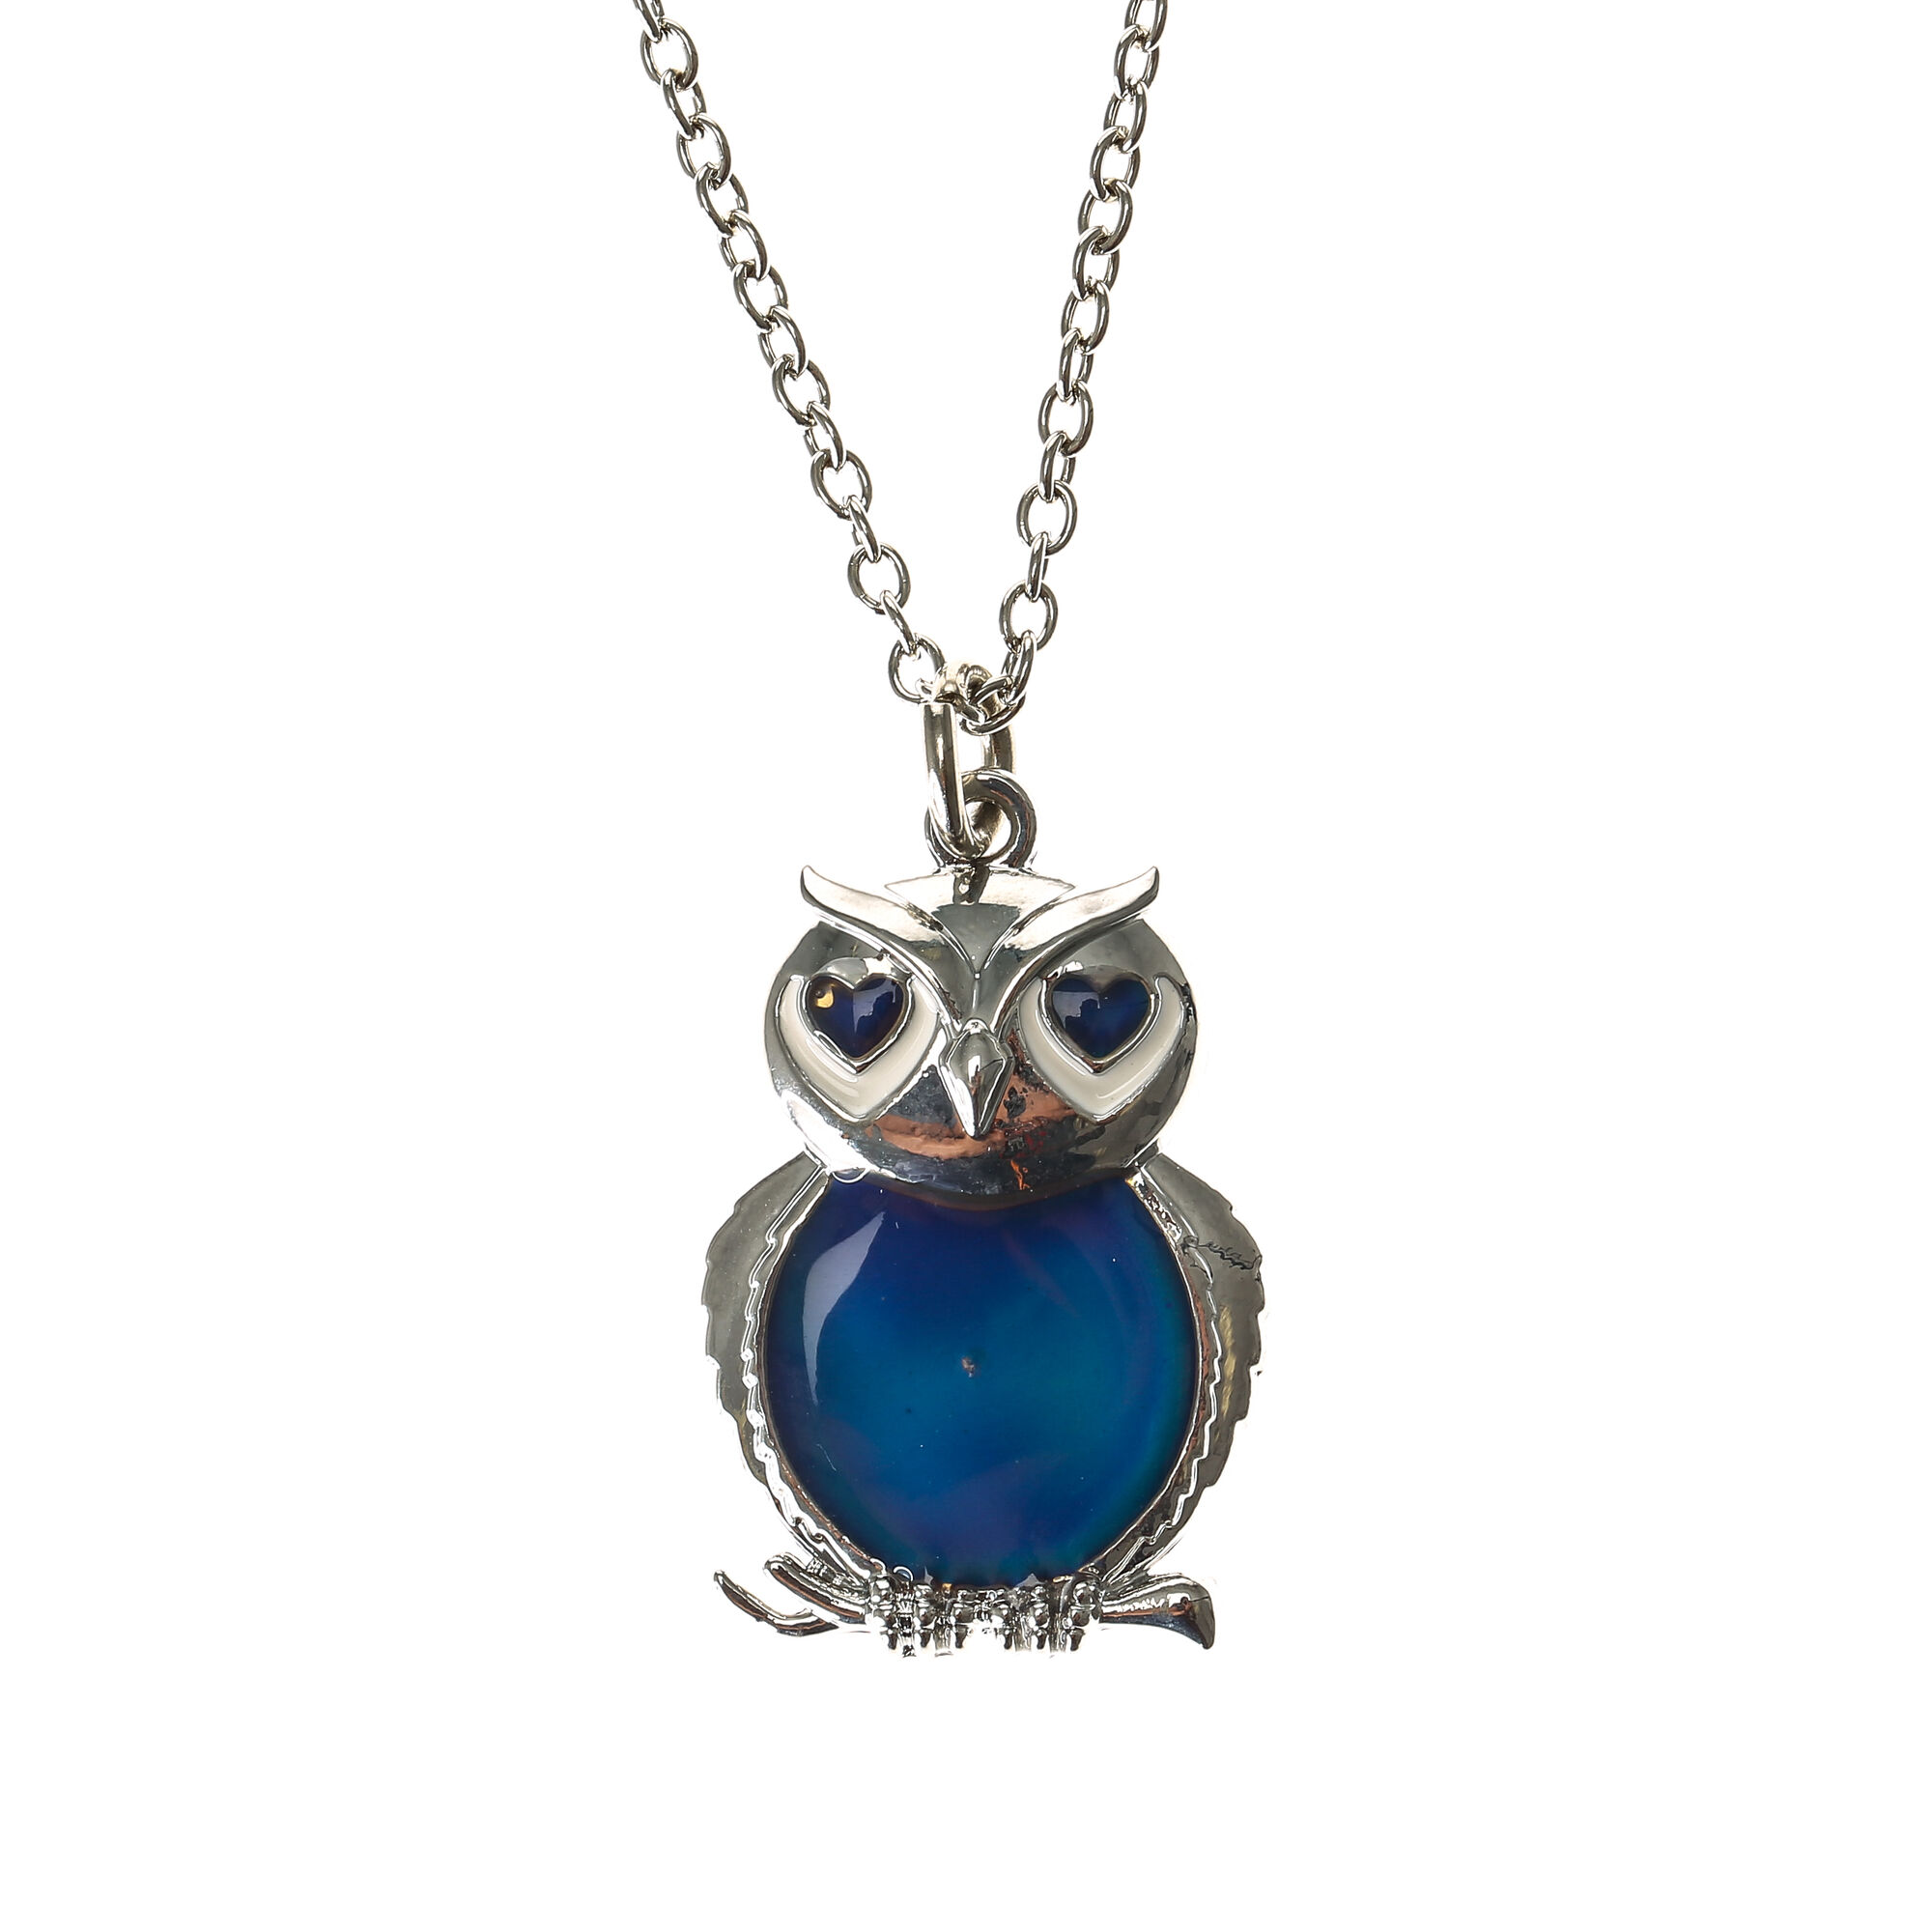 Mood owl pendant necklace claires mood owl pendant necklace aloadofball Image collections